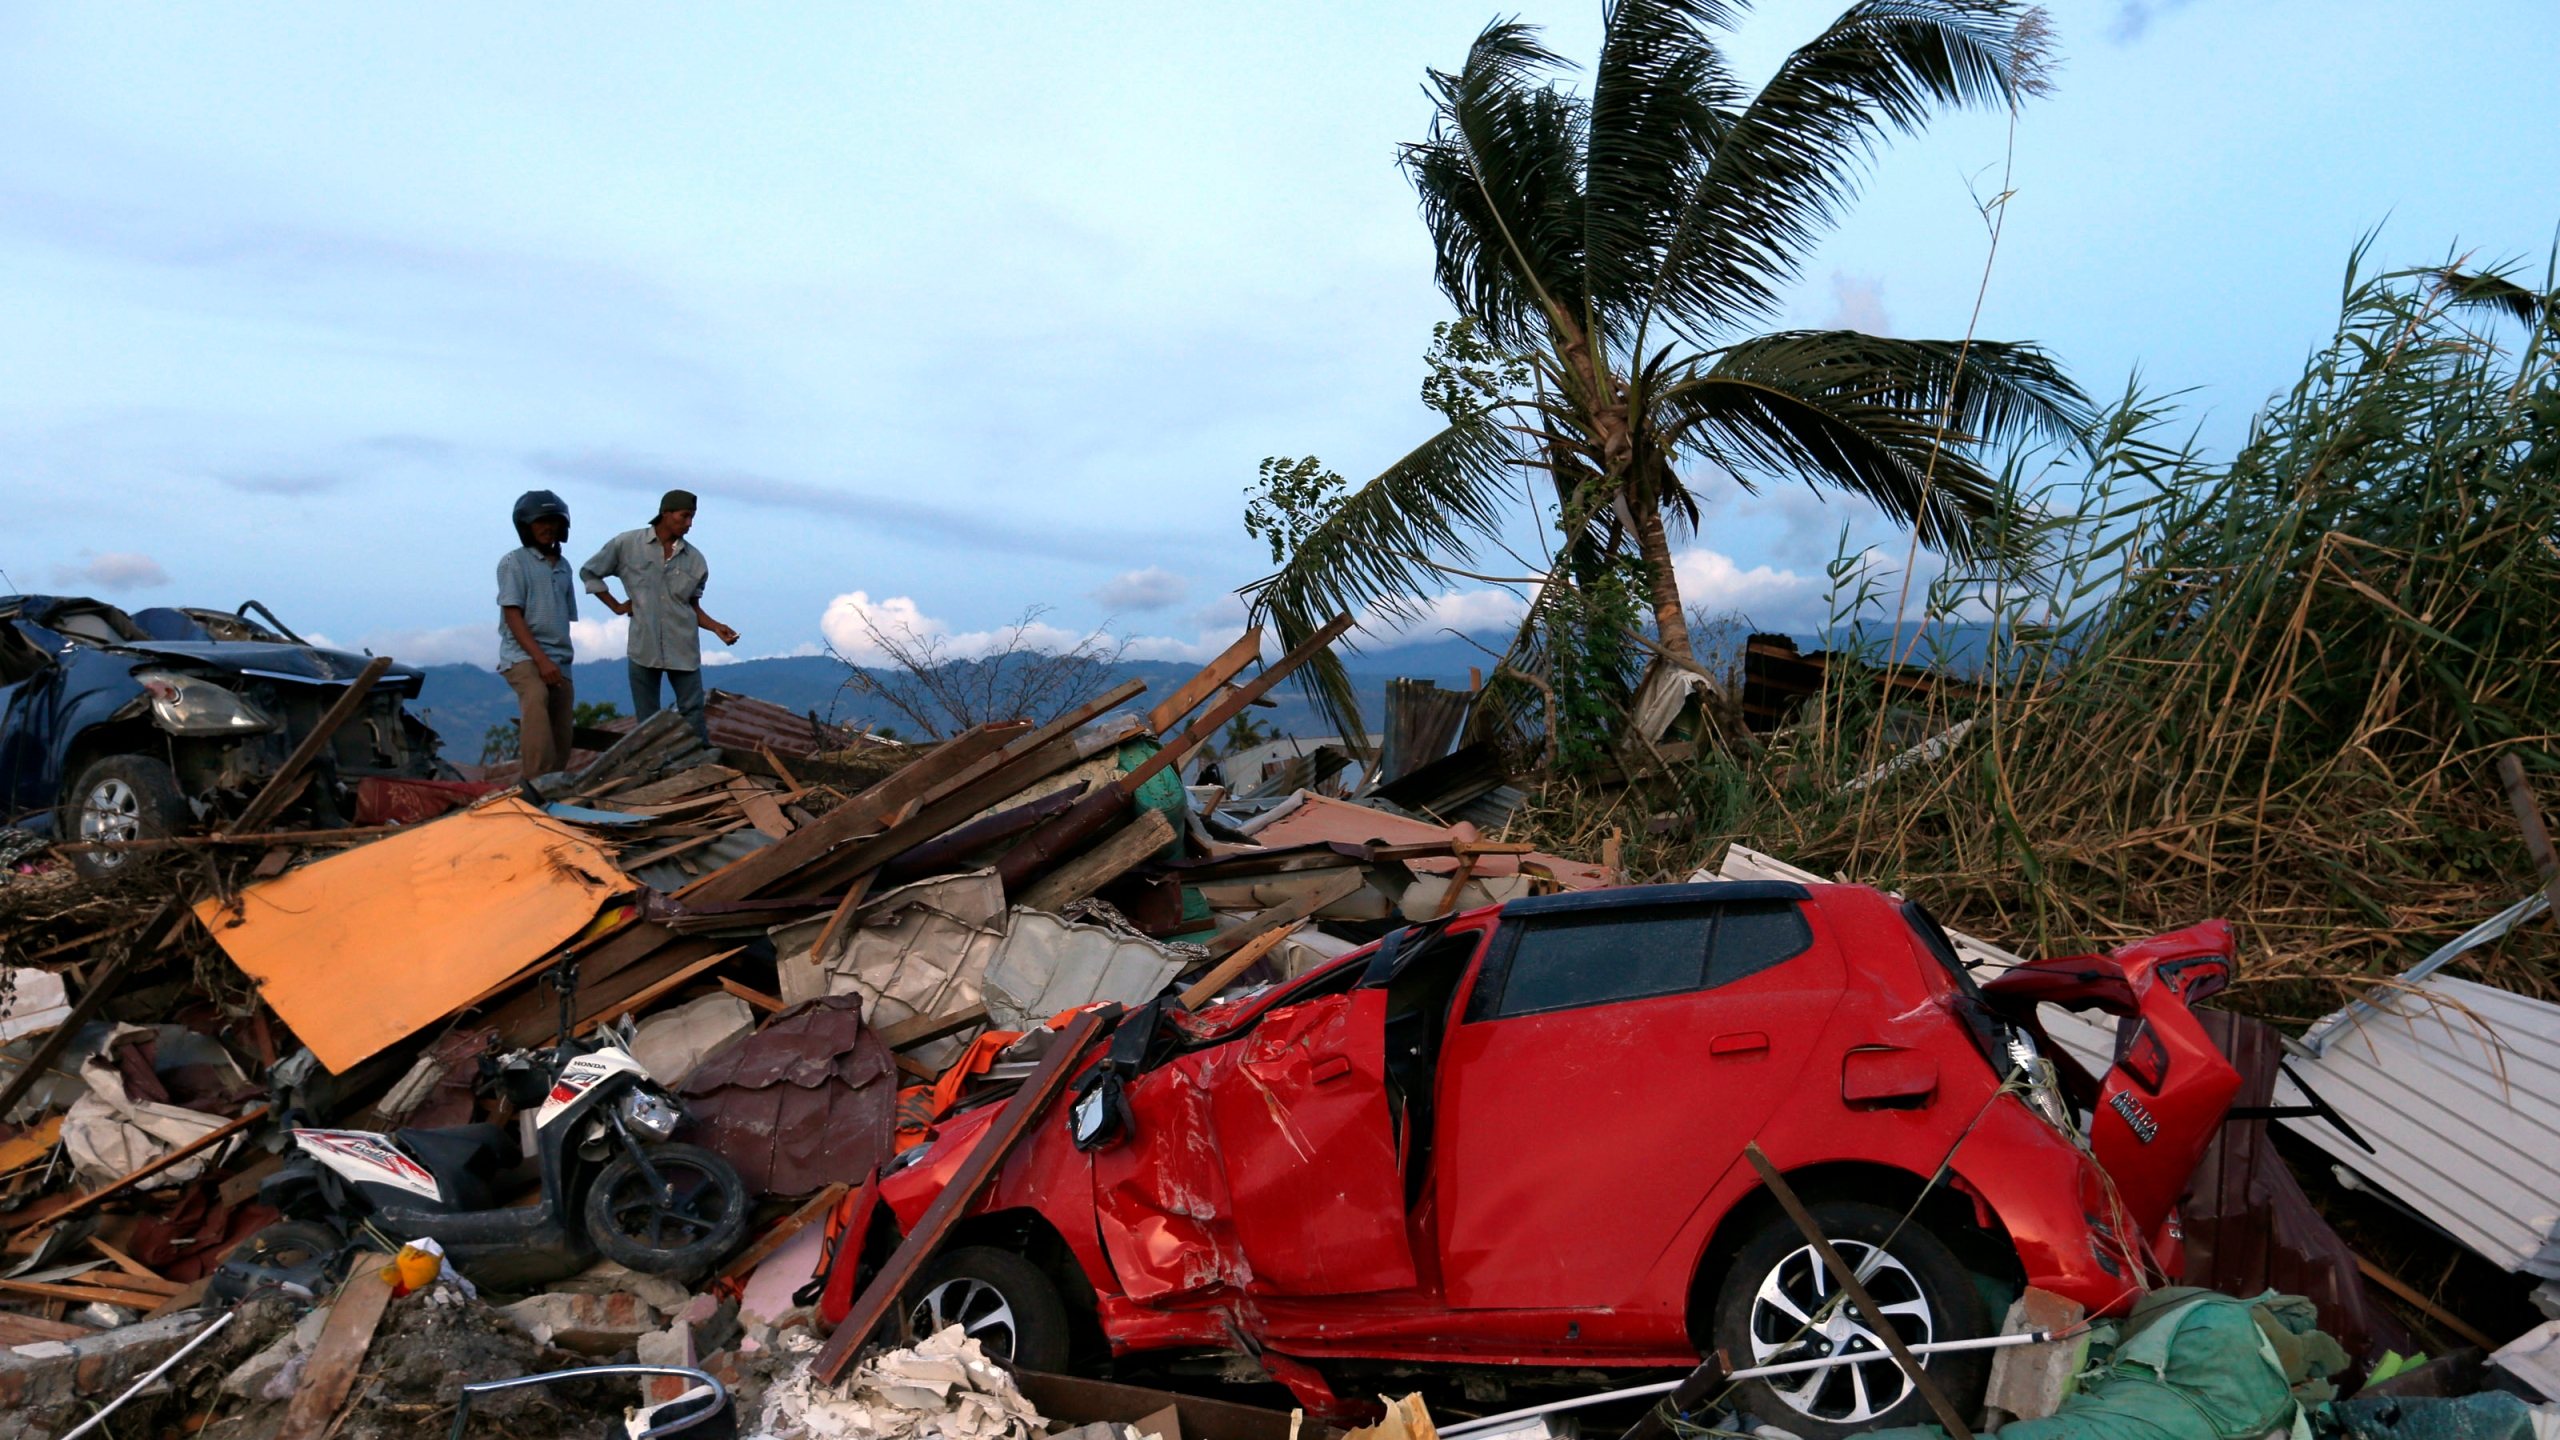 APTOPIX_Indonesia_Earthquake_00979-159532.jpg32157234